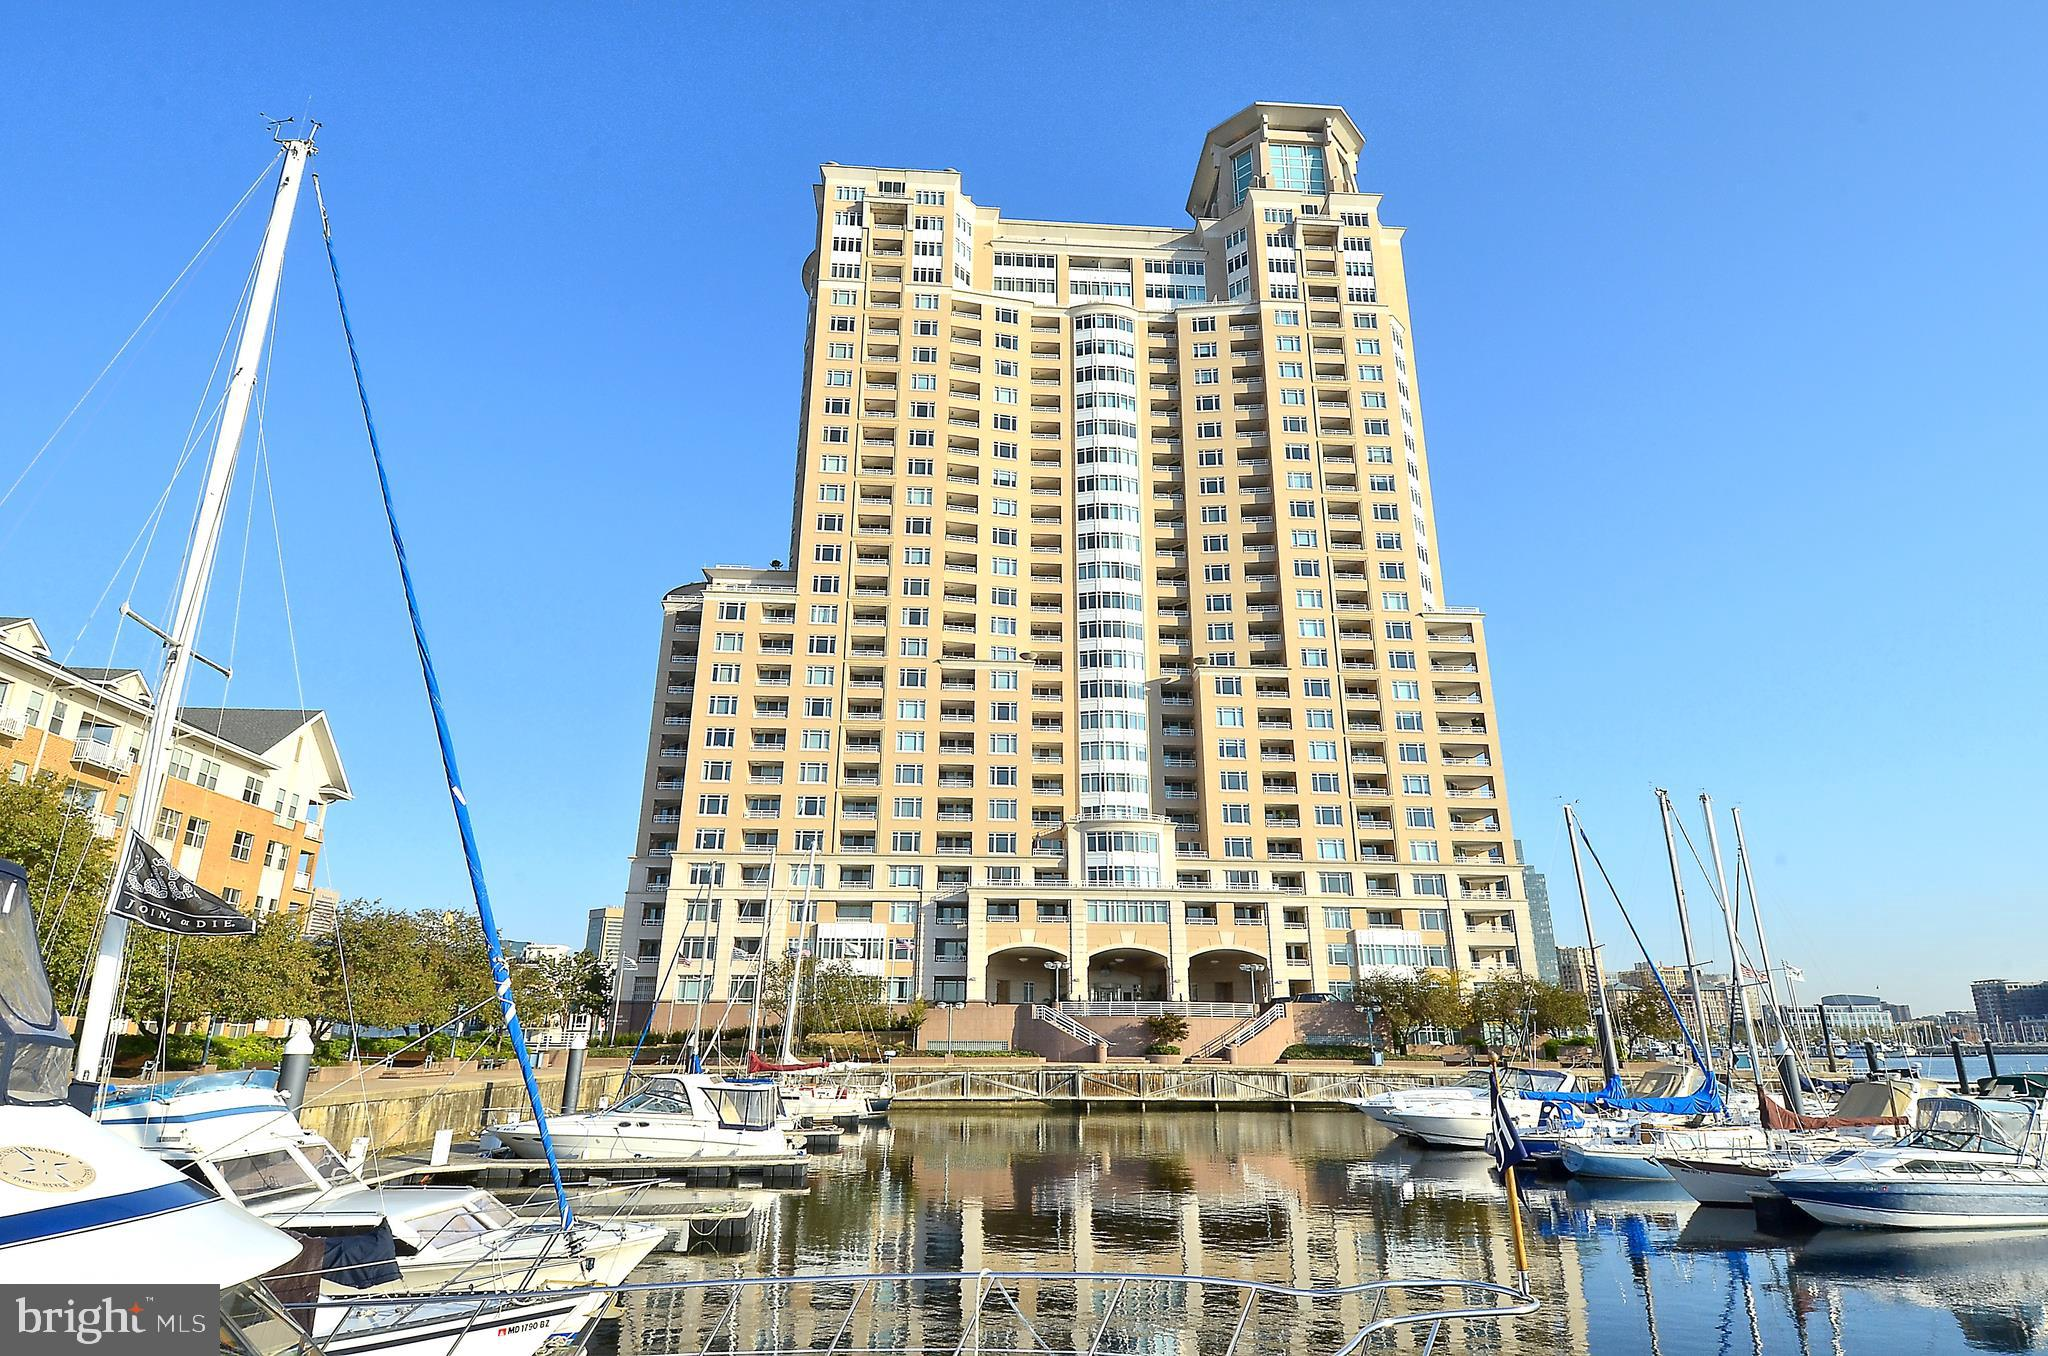 Combine urban chic, luxury living, incredible marina and harbor views and you will find yourself in The Harborview Towers.  An amazing variety of amenities at your doorstep.  In/outdoor pools, fitness center, personal and business meeting centers, social rooms, guest suites, concierge, valet services and much more.  Enjoy easy living in this super sun-filled one bedroom, one bathroom third floor unit.  Wood floors throughout, incredible harbor and marina views from your private balcony. The bedroom features picture windows with Harbor, Locust Point, Federal Hill and marina views, a walk-in closet with organizers and an exit to the private balcony.  The spacious living room offers the same spectacular view.  There is a dining space, breakfast bar area and room for the cook in the kitchen.  The HVAC was updated in 2015.  This unit comes with storage space and 1 assigned parking spot(P2-199).  Nearby attractions are endless. Shopping is convenient at McHenry Row (Harris Teeter, Dunkin Donuts, Starbucks), water taxi your way to Harbor East, Canton, Fells Point, easy access to BWI, Marc and Amtrak trains.  Take in a game at Oriole Park or M&T stadium, museums, Hippodrome, Royal Farms Arena and all within a few miles.  Garage Fee: $87.00 mo, Marina & Yacht Club Fee: $198.31 mo, Condo Fee: $859.25 mo.